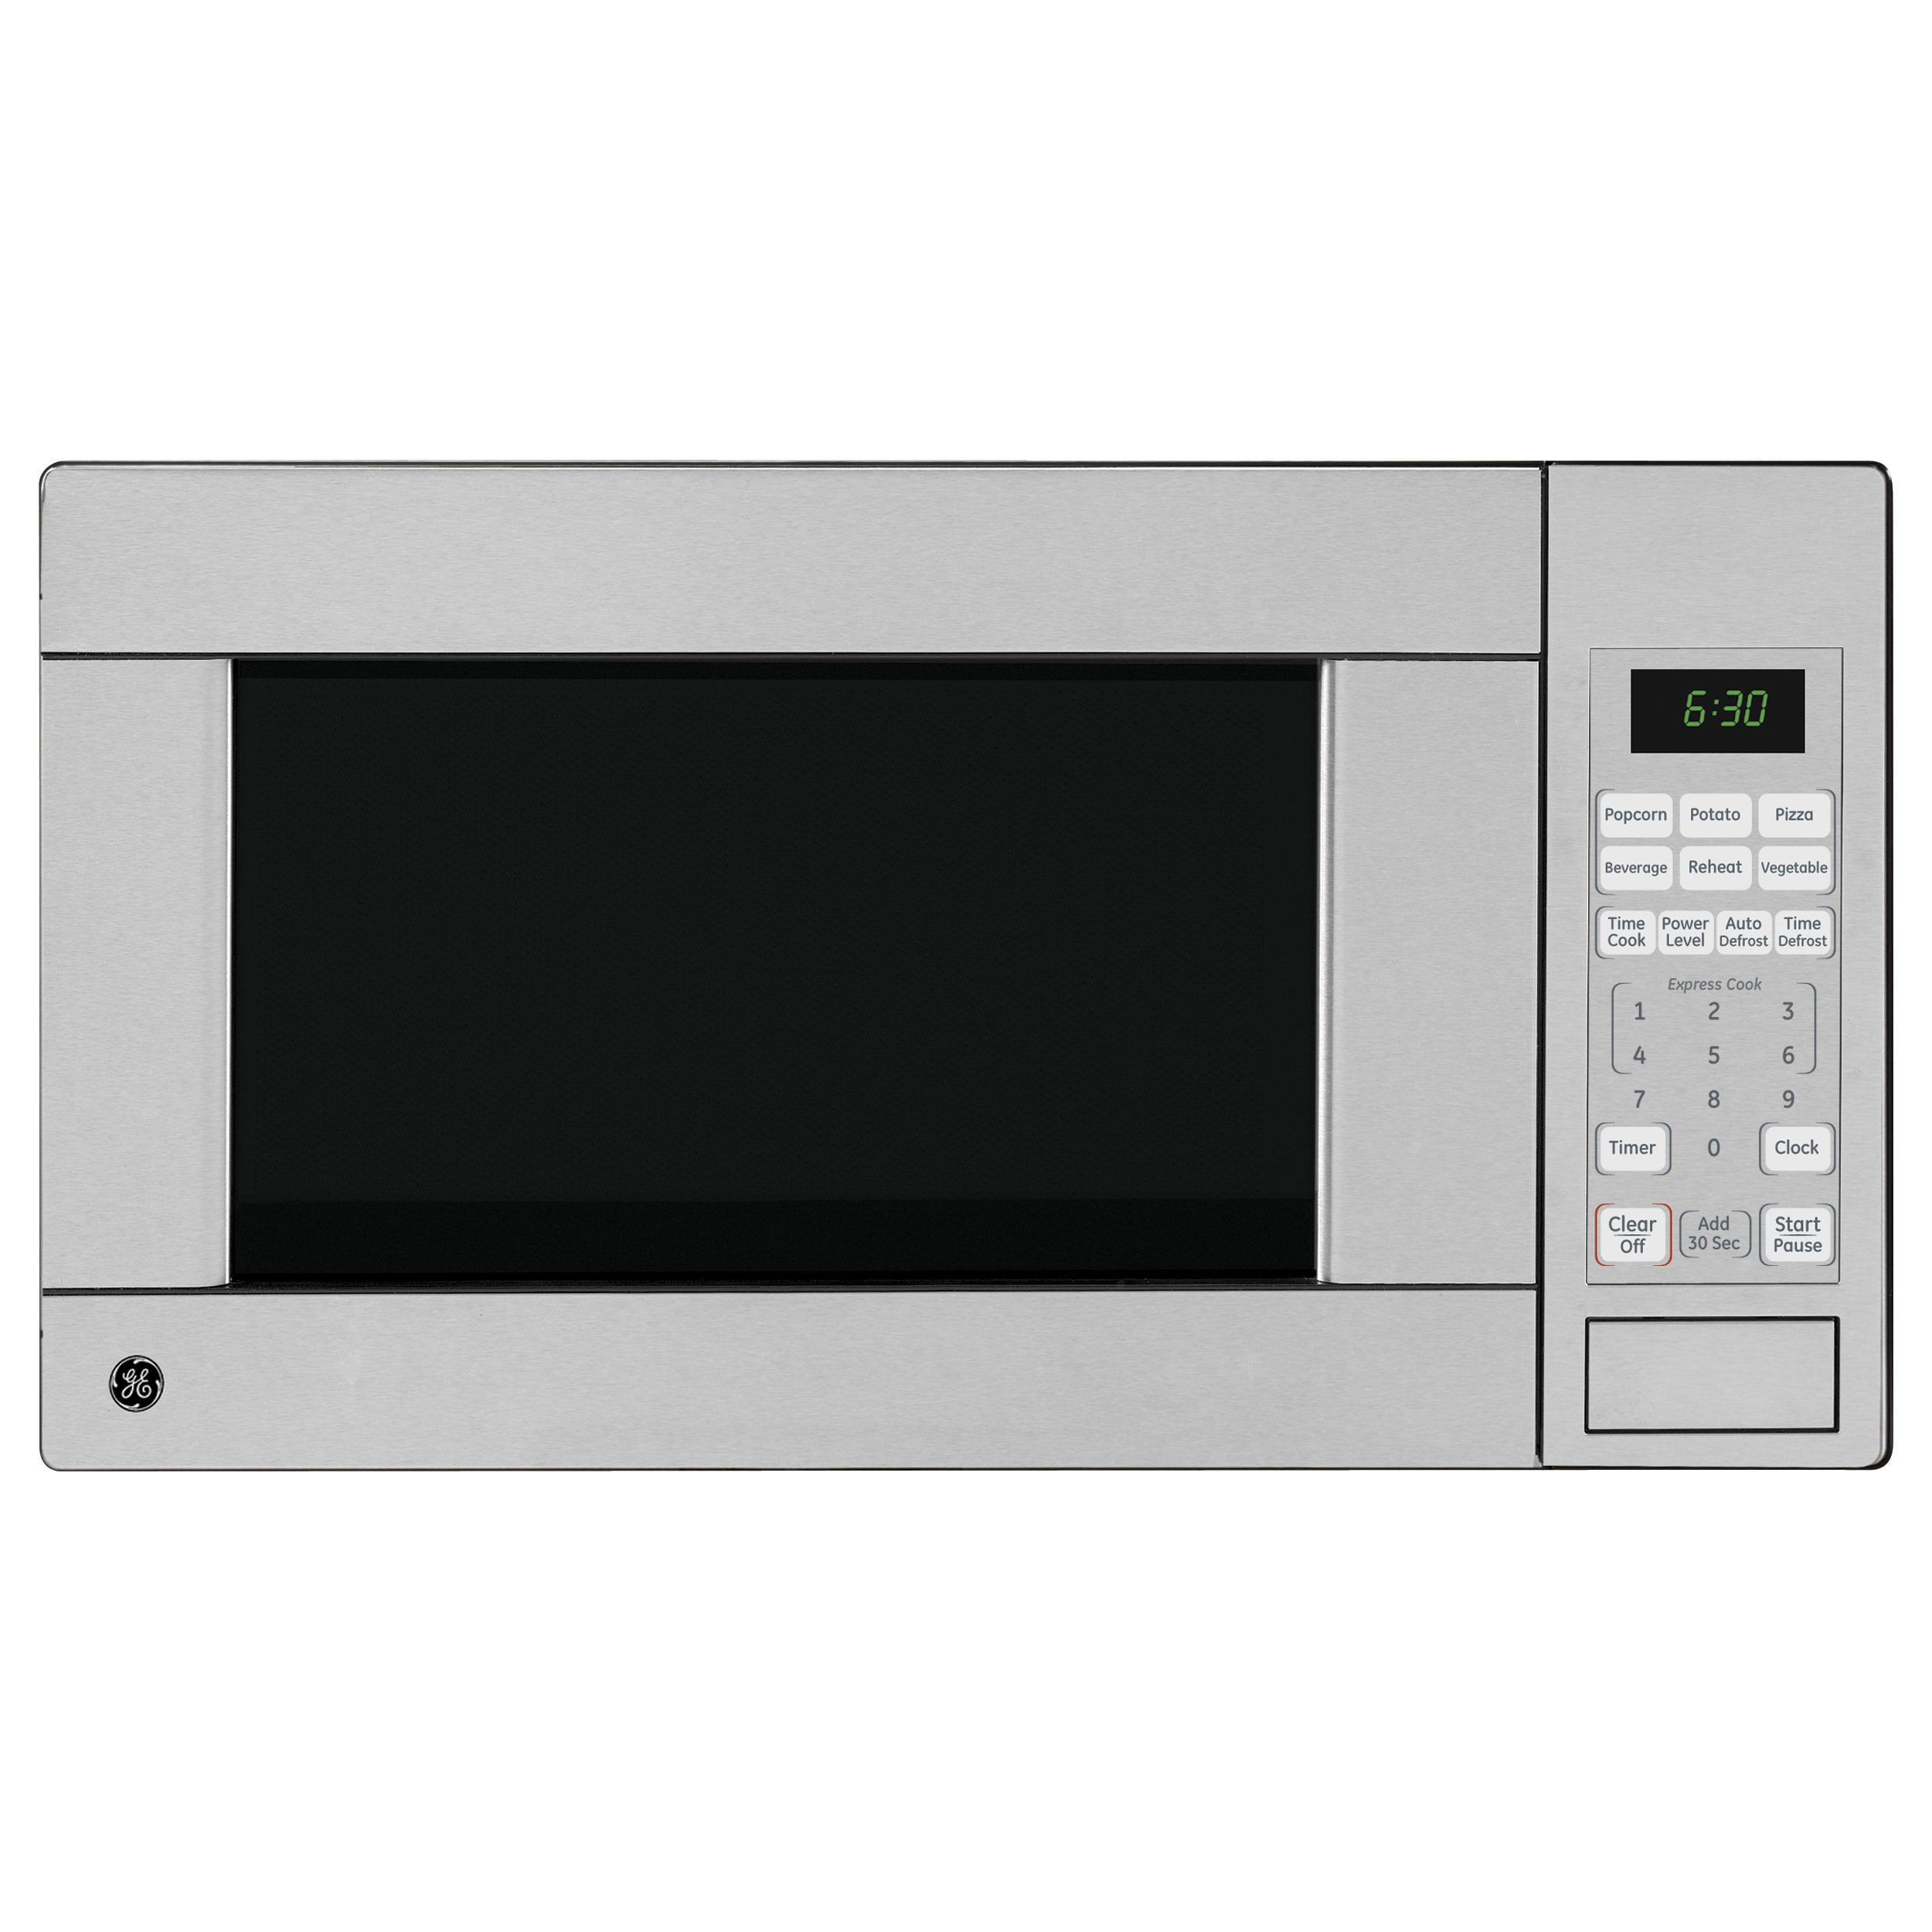 Countertop Microwaves With Trim Kits